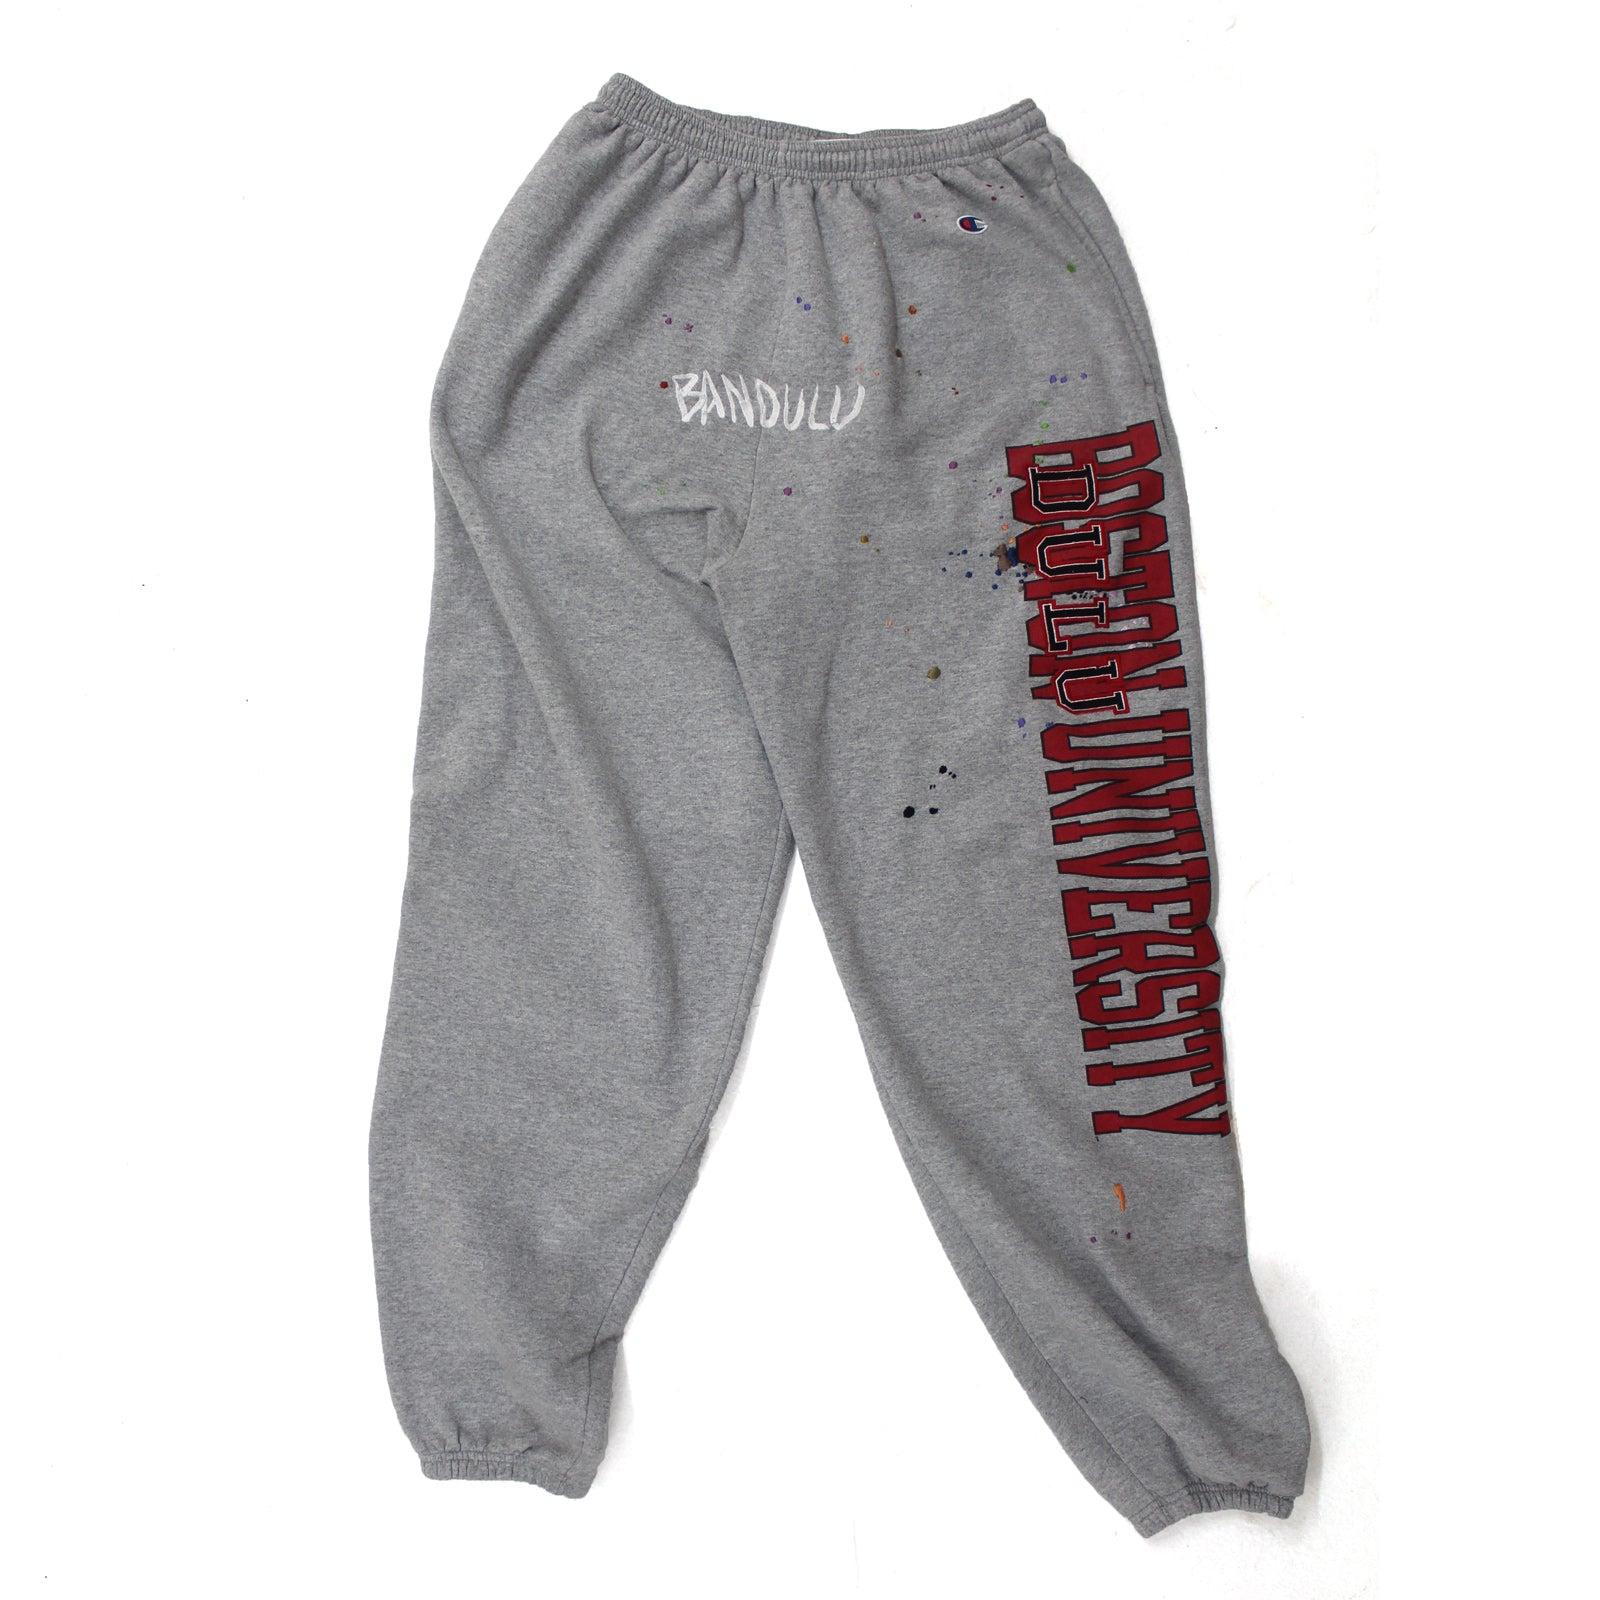 "BANDULU ""GOOD OL' DULU 'U' "" VINTAGE CHAMPION SWEATPANTS"